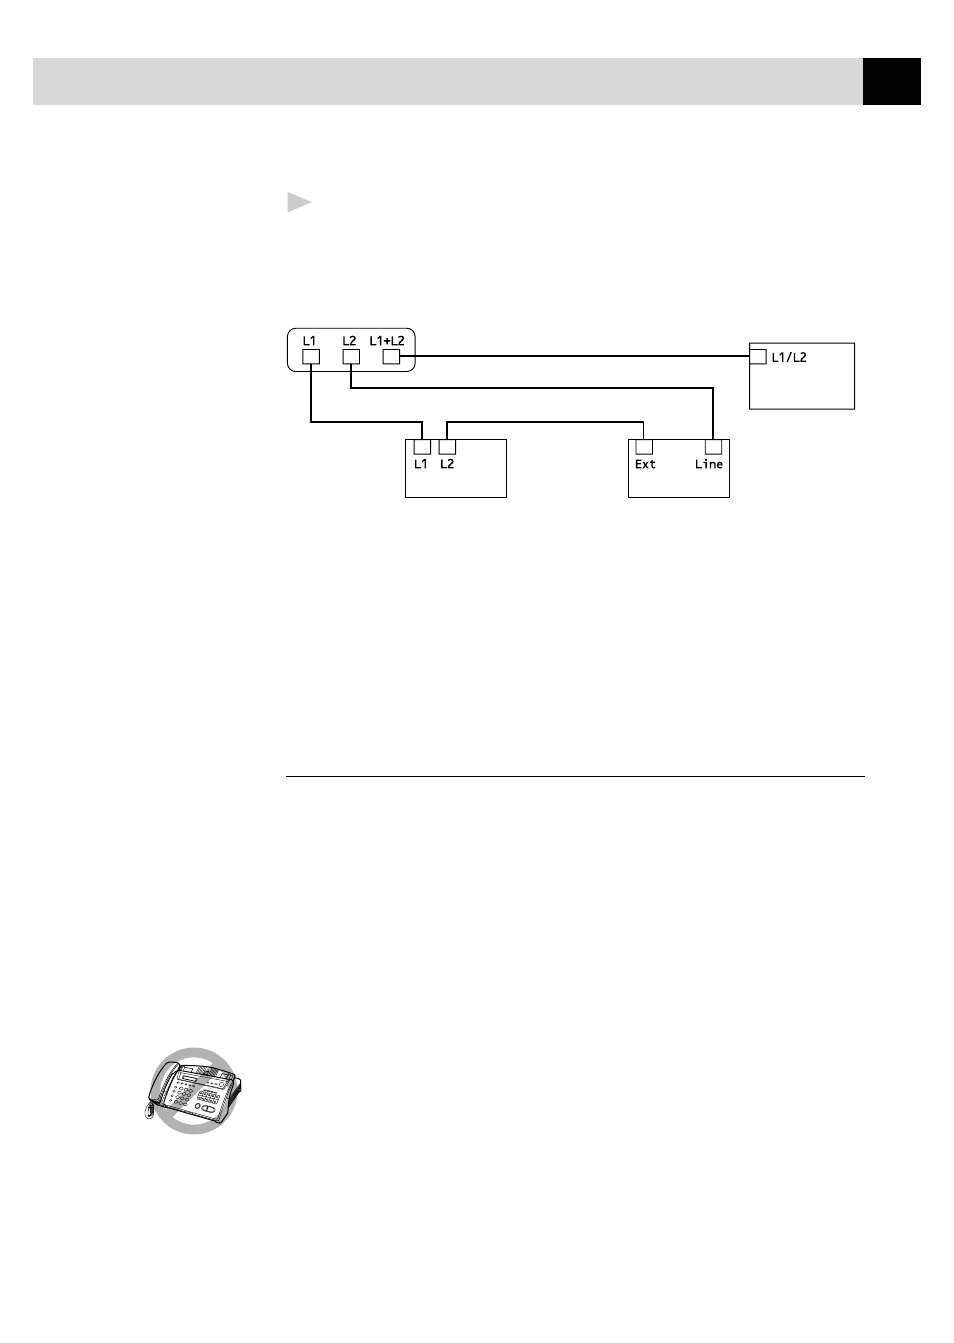 hight resolution of multi line connections pbx brother fax 355mc user manual page 27 123